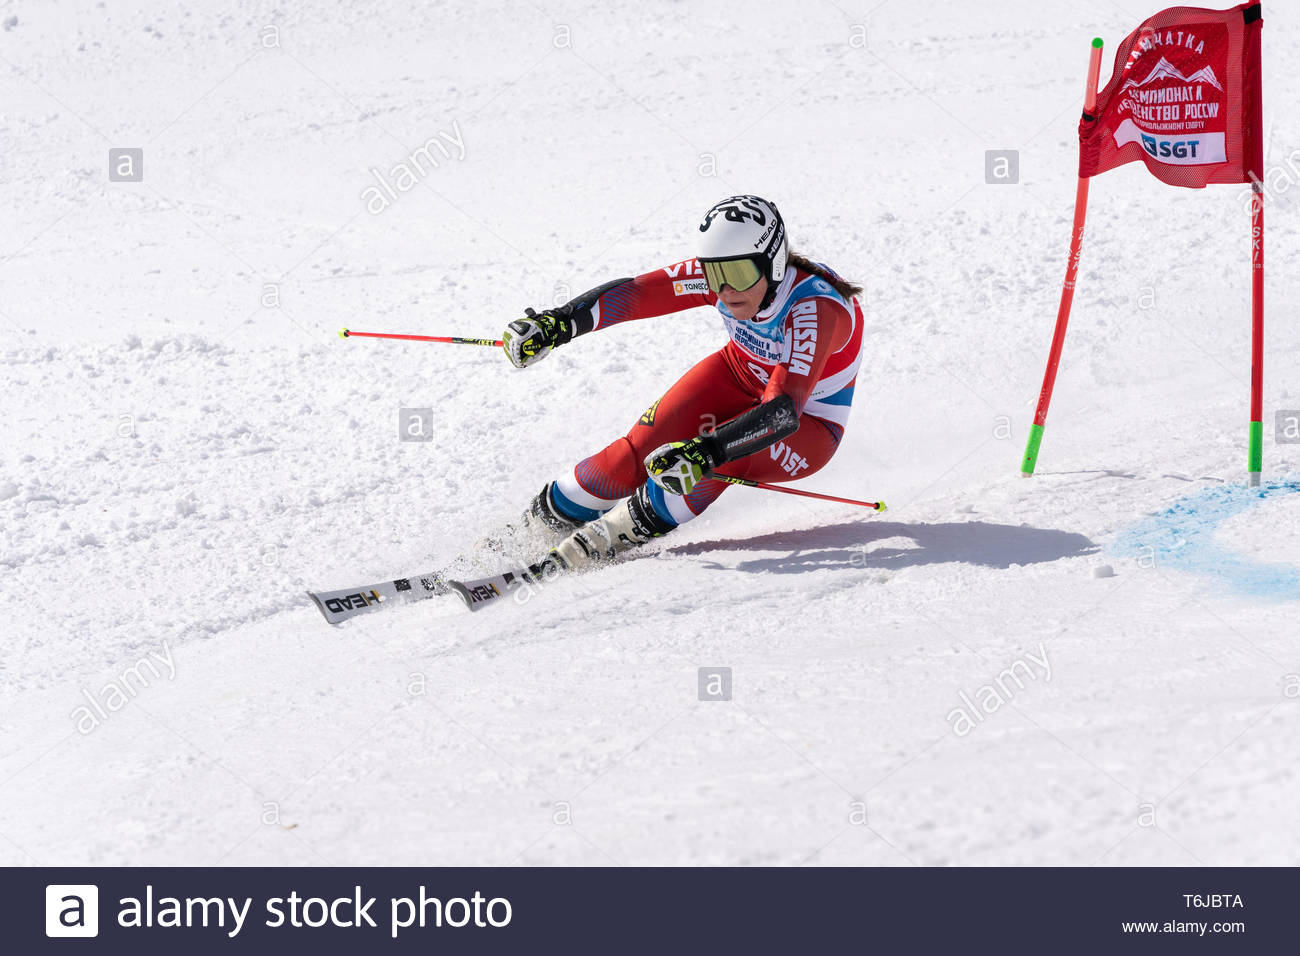 KAMCHATKA PENINSULA, RUSSIAN FEDERATION - APRIL 1, 2019: Russian Women's Alpine Skiing Championship, giant slalom. Mountain skier Pleshkova Julia (Kam - Stock Image